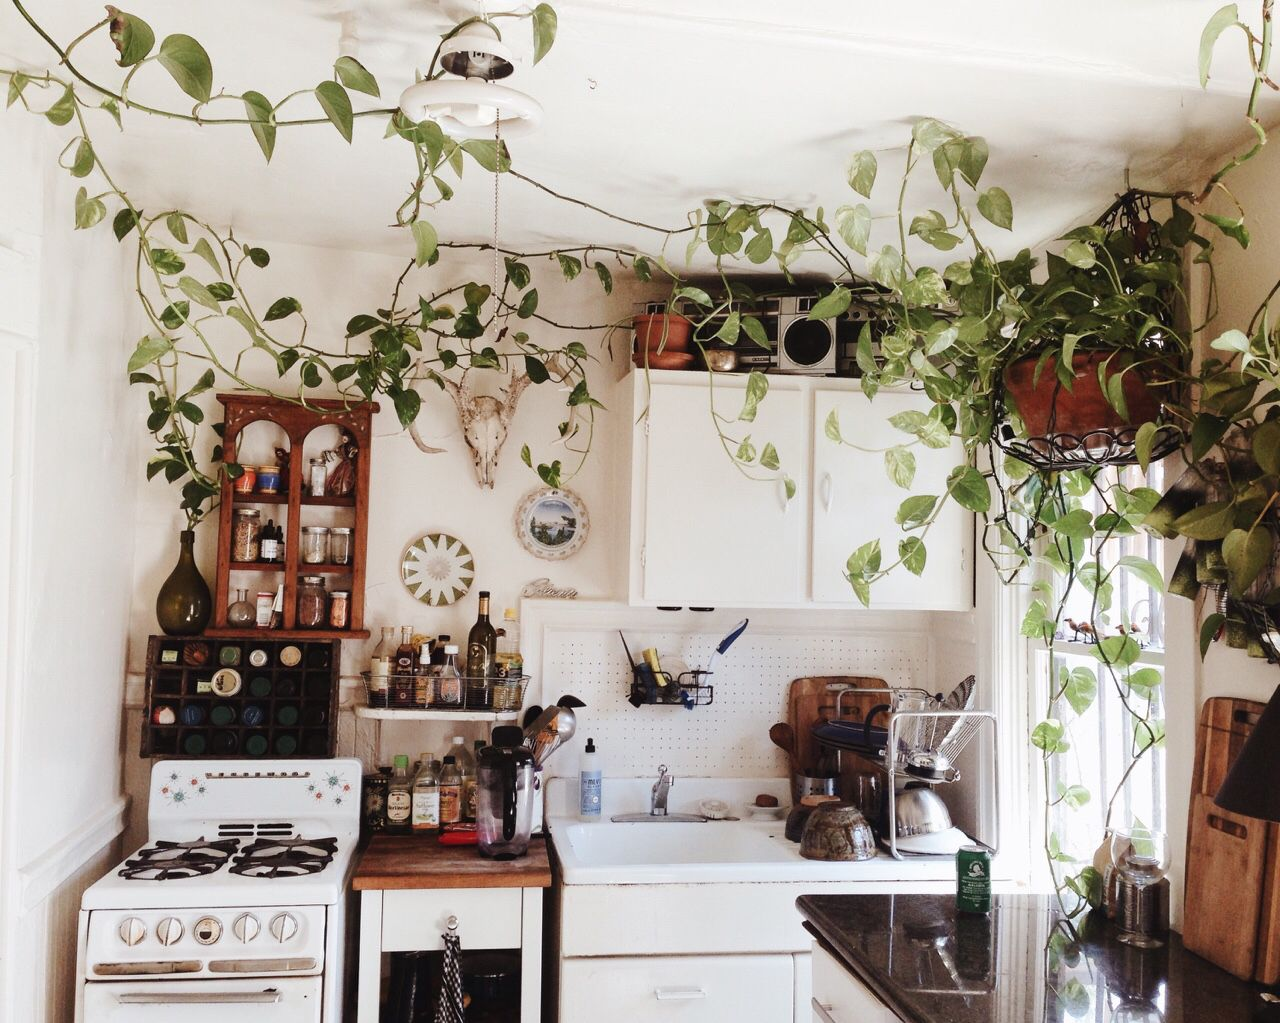 Plants For Kitchen To Decorate It: A Kitchen Is Always Better With Plants